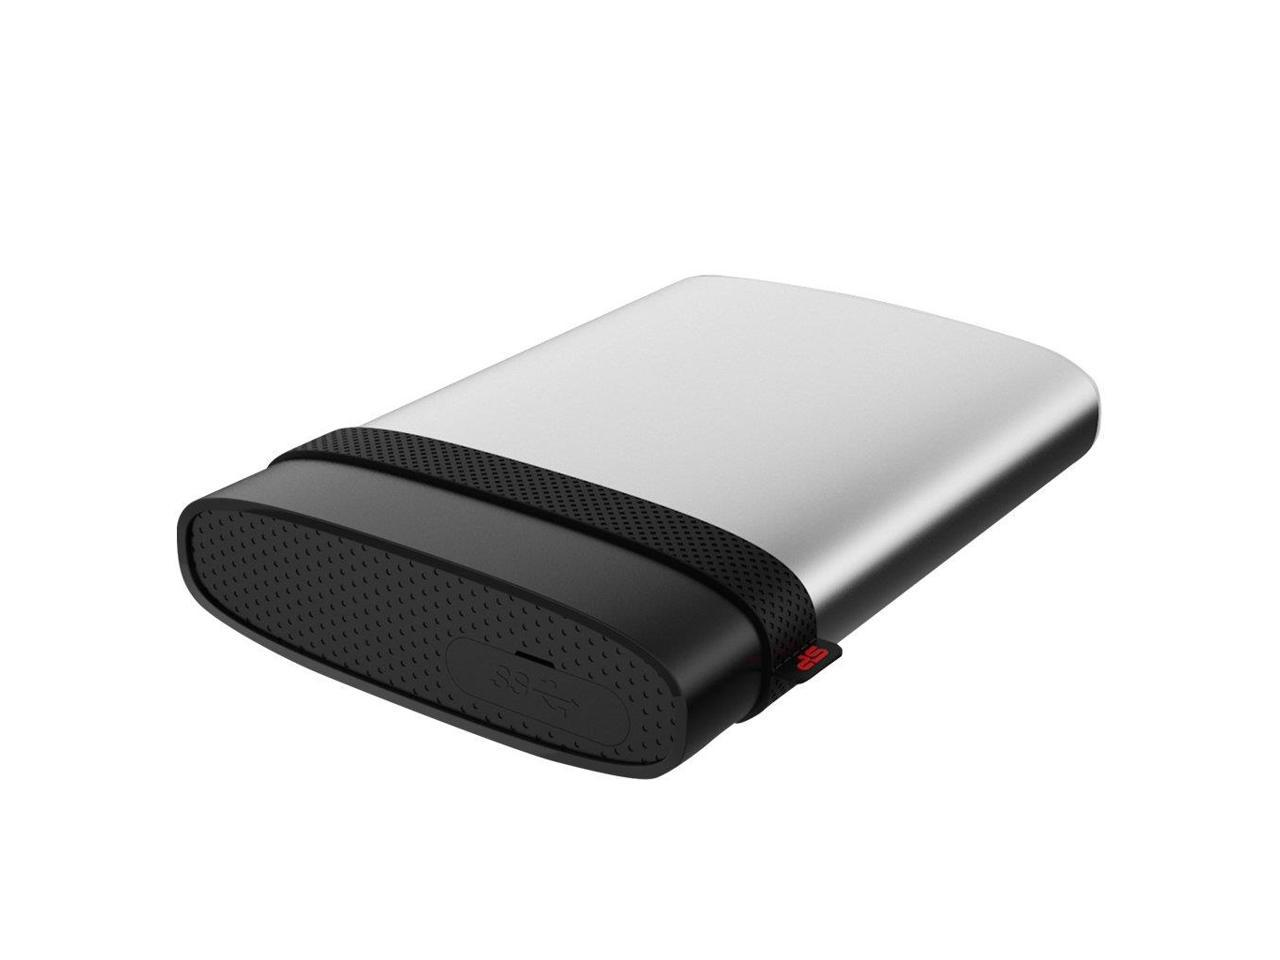 Silicon Power Armor A85 2TB USB 3.0 Rugged Portable 2.0TB External Hard Drive